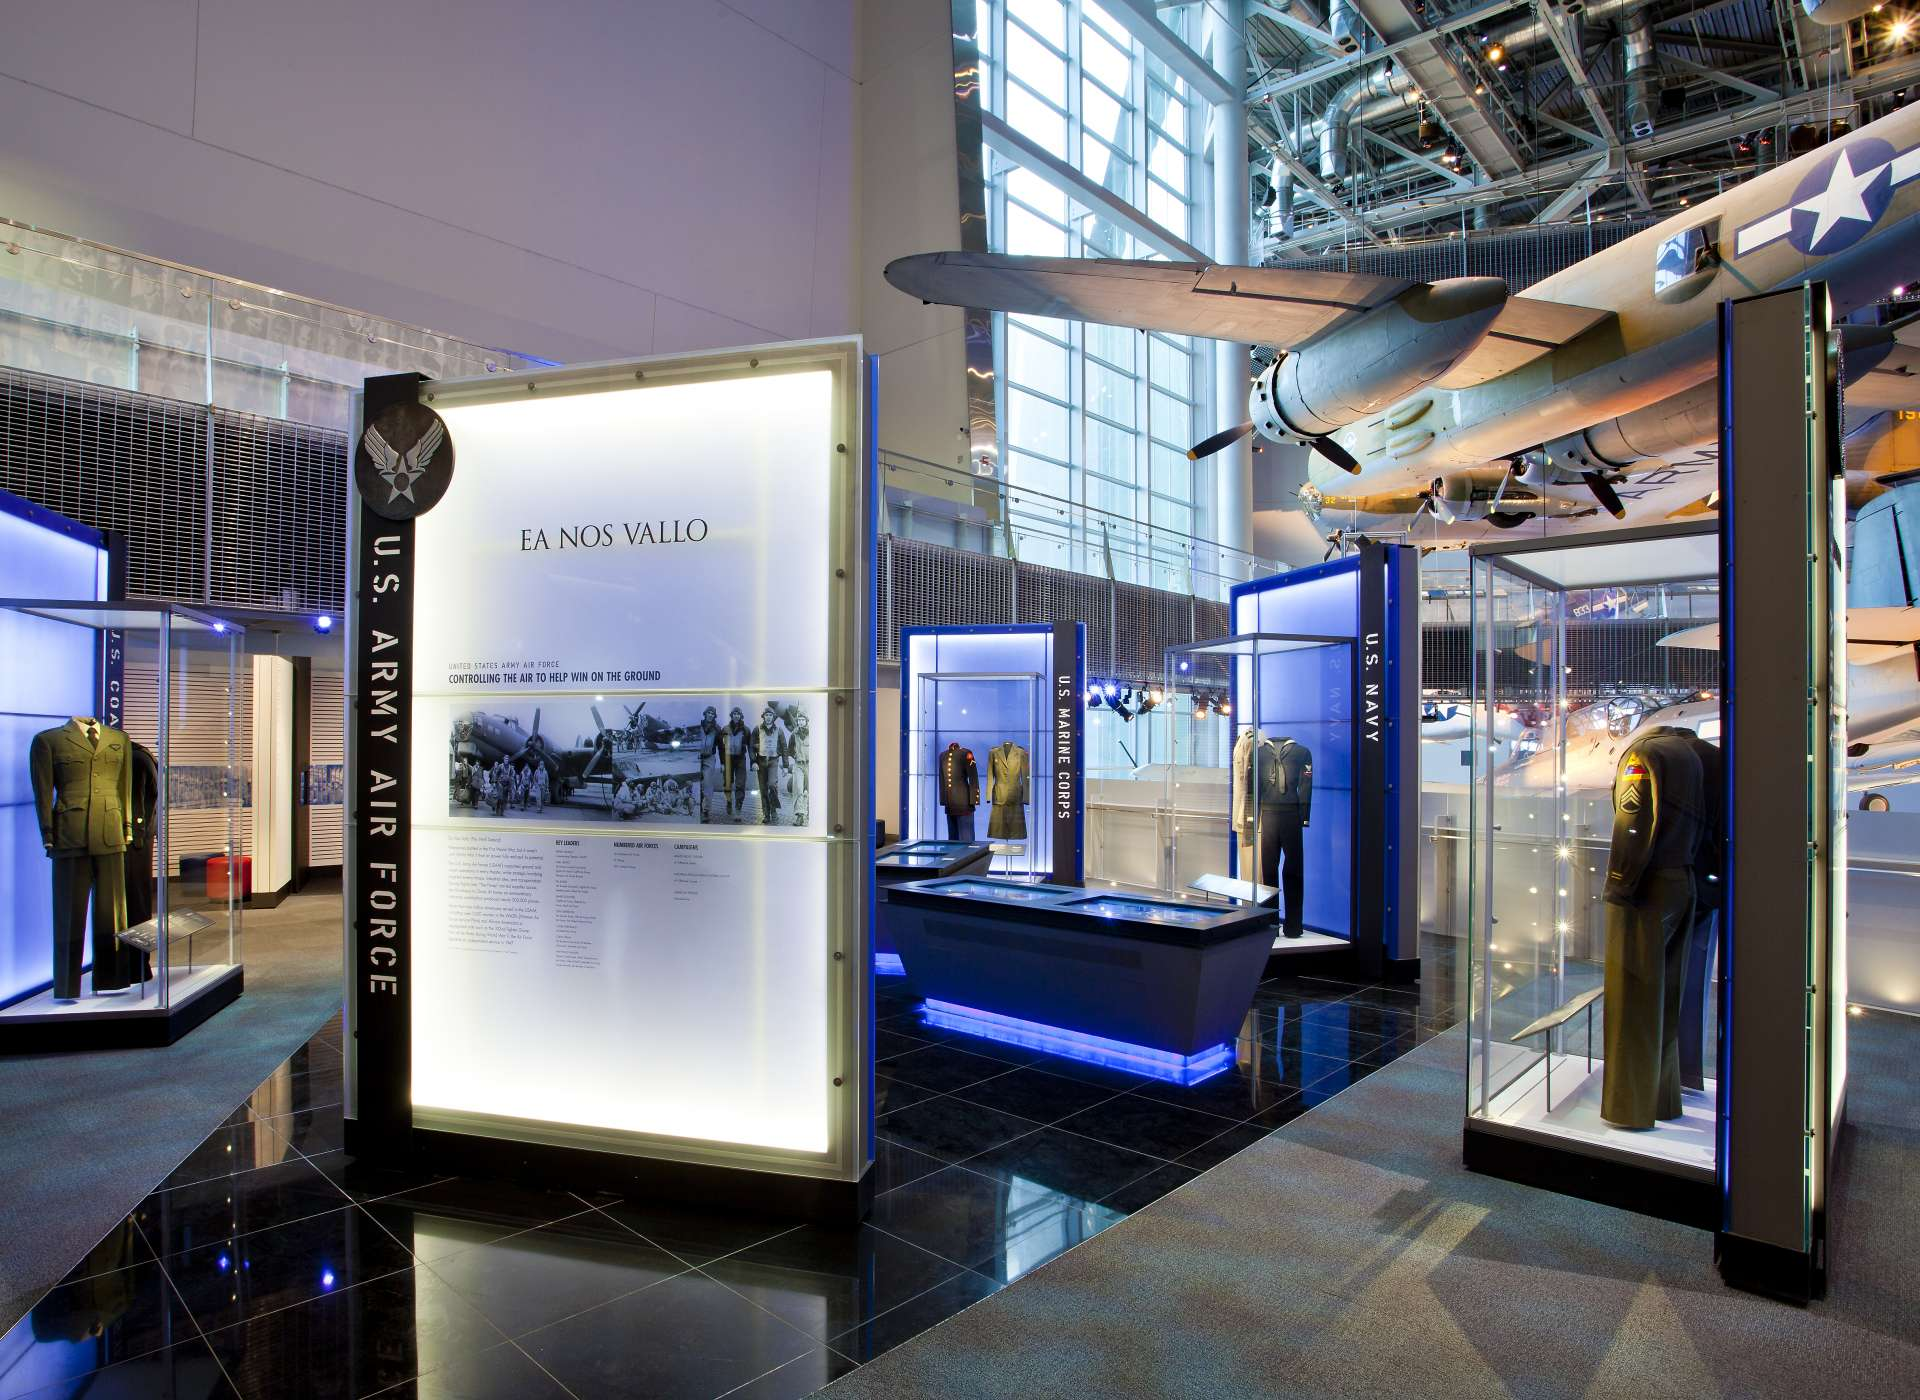 US Freedom Pavilion: the Boeing Center, Laborde Services Gallery